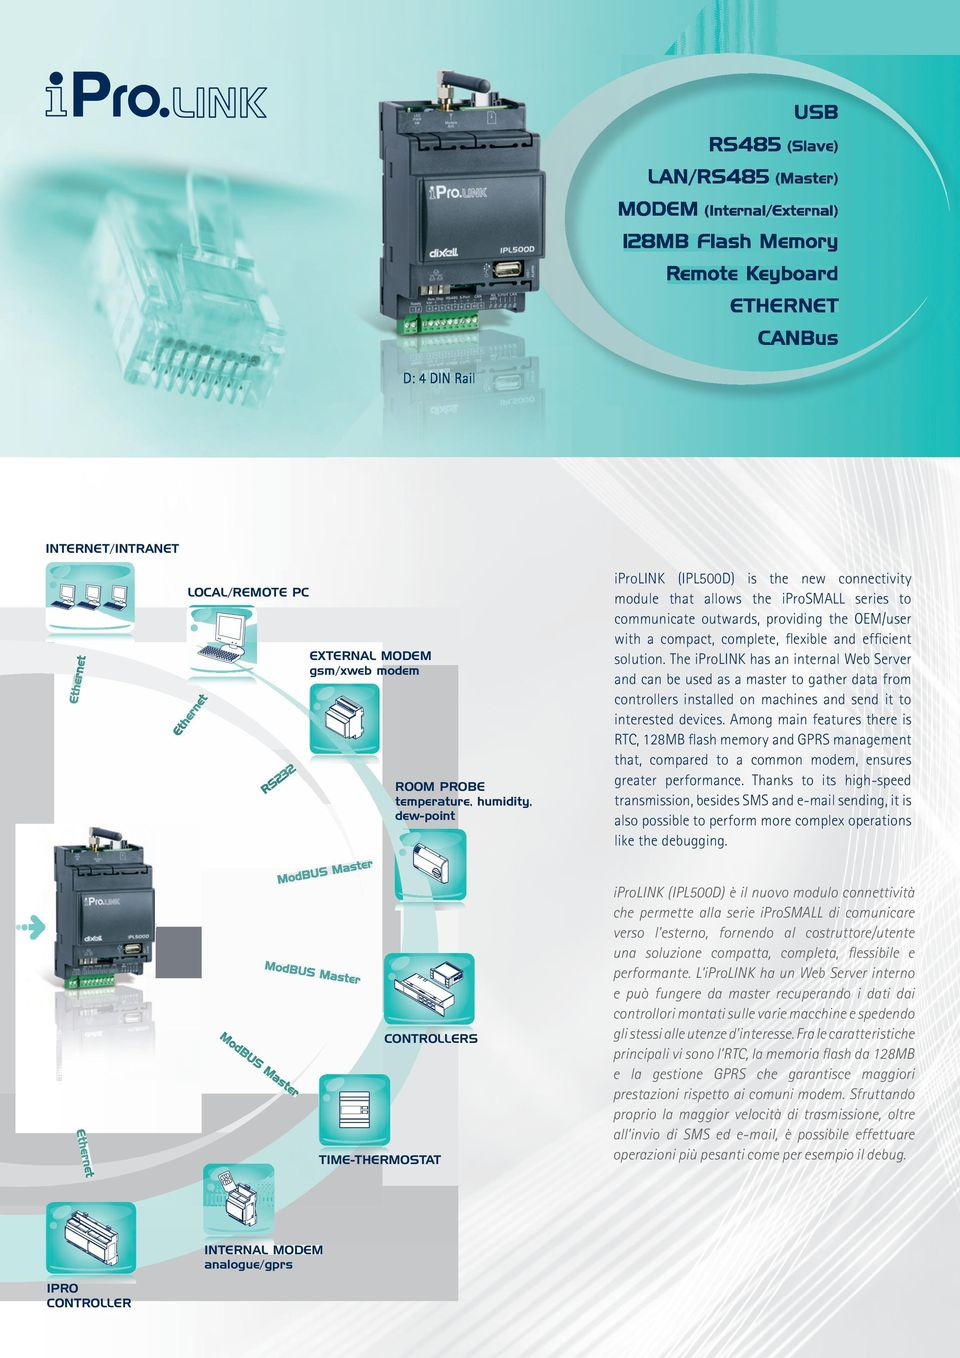 CONTROLLERS S iprolink (IPL500D) is the new connectivity module that allows the iprosmall series to communicate outwards, providing the OEM/user with a compact, complete, flexible and efficient